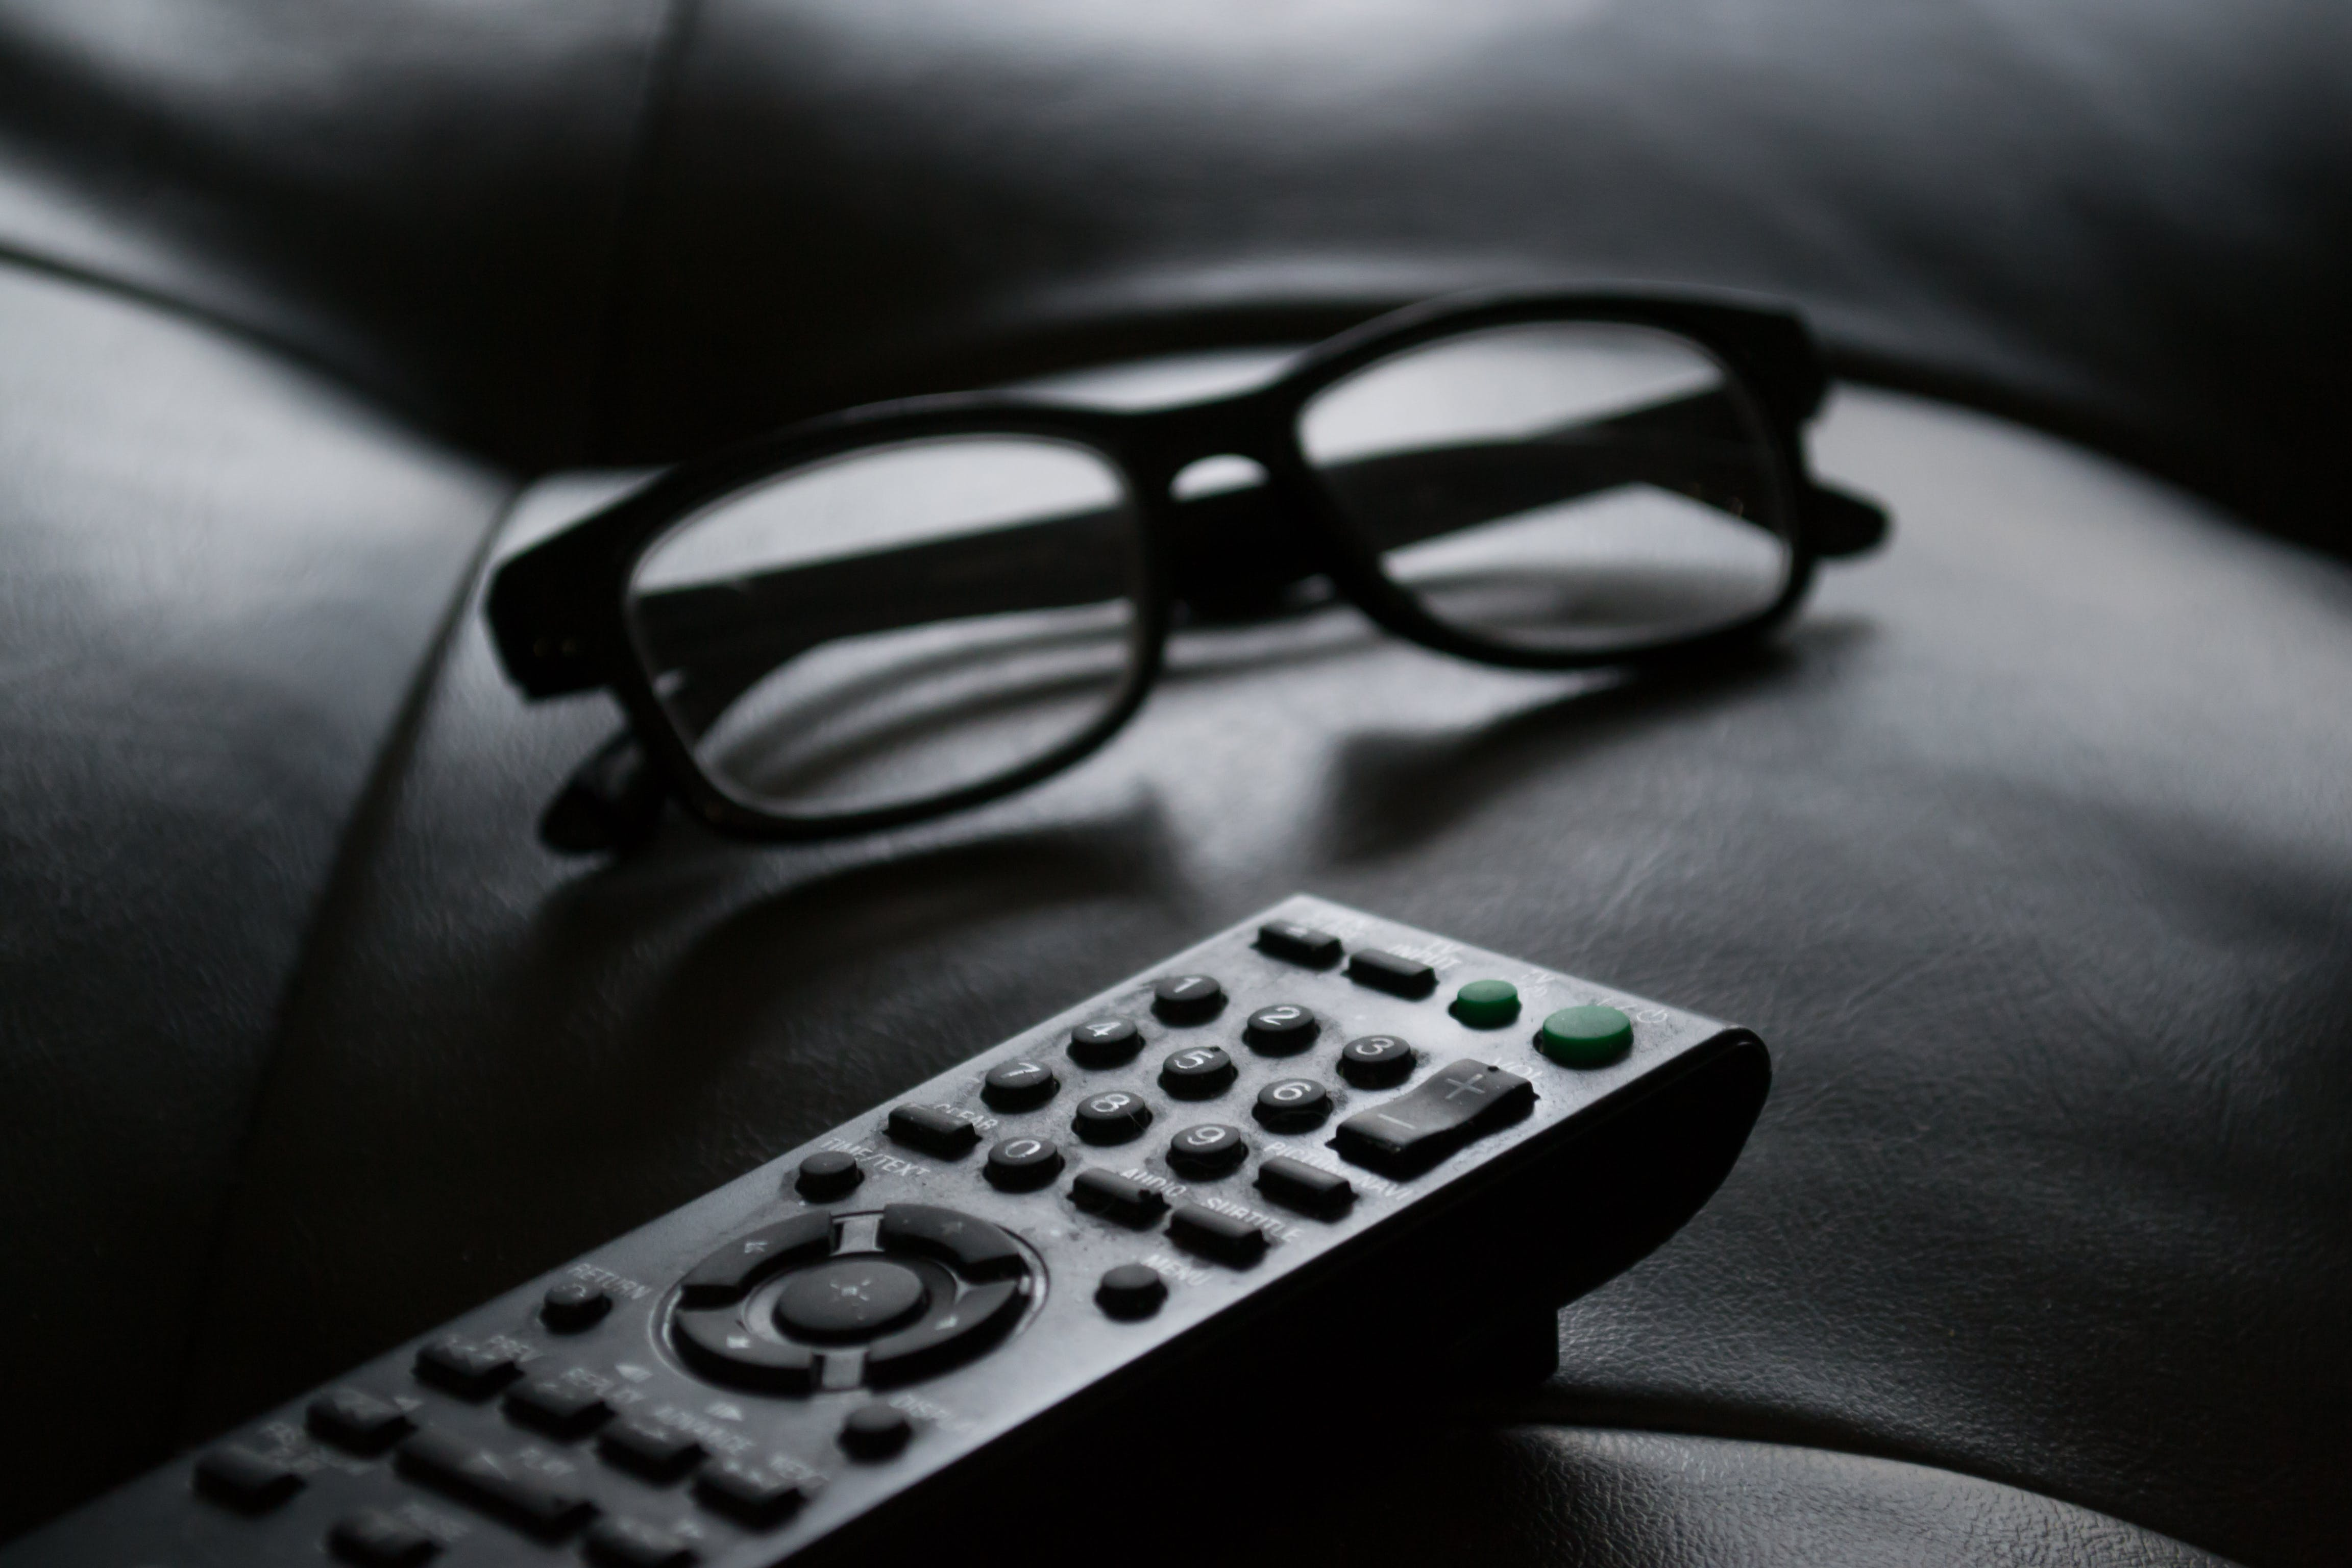 Grayscale Photo of Remote Control Near Eyeglasses